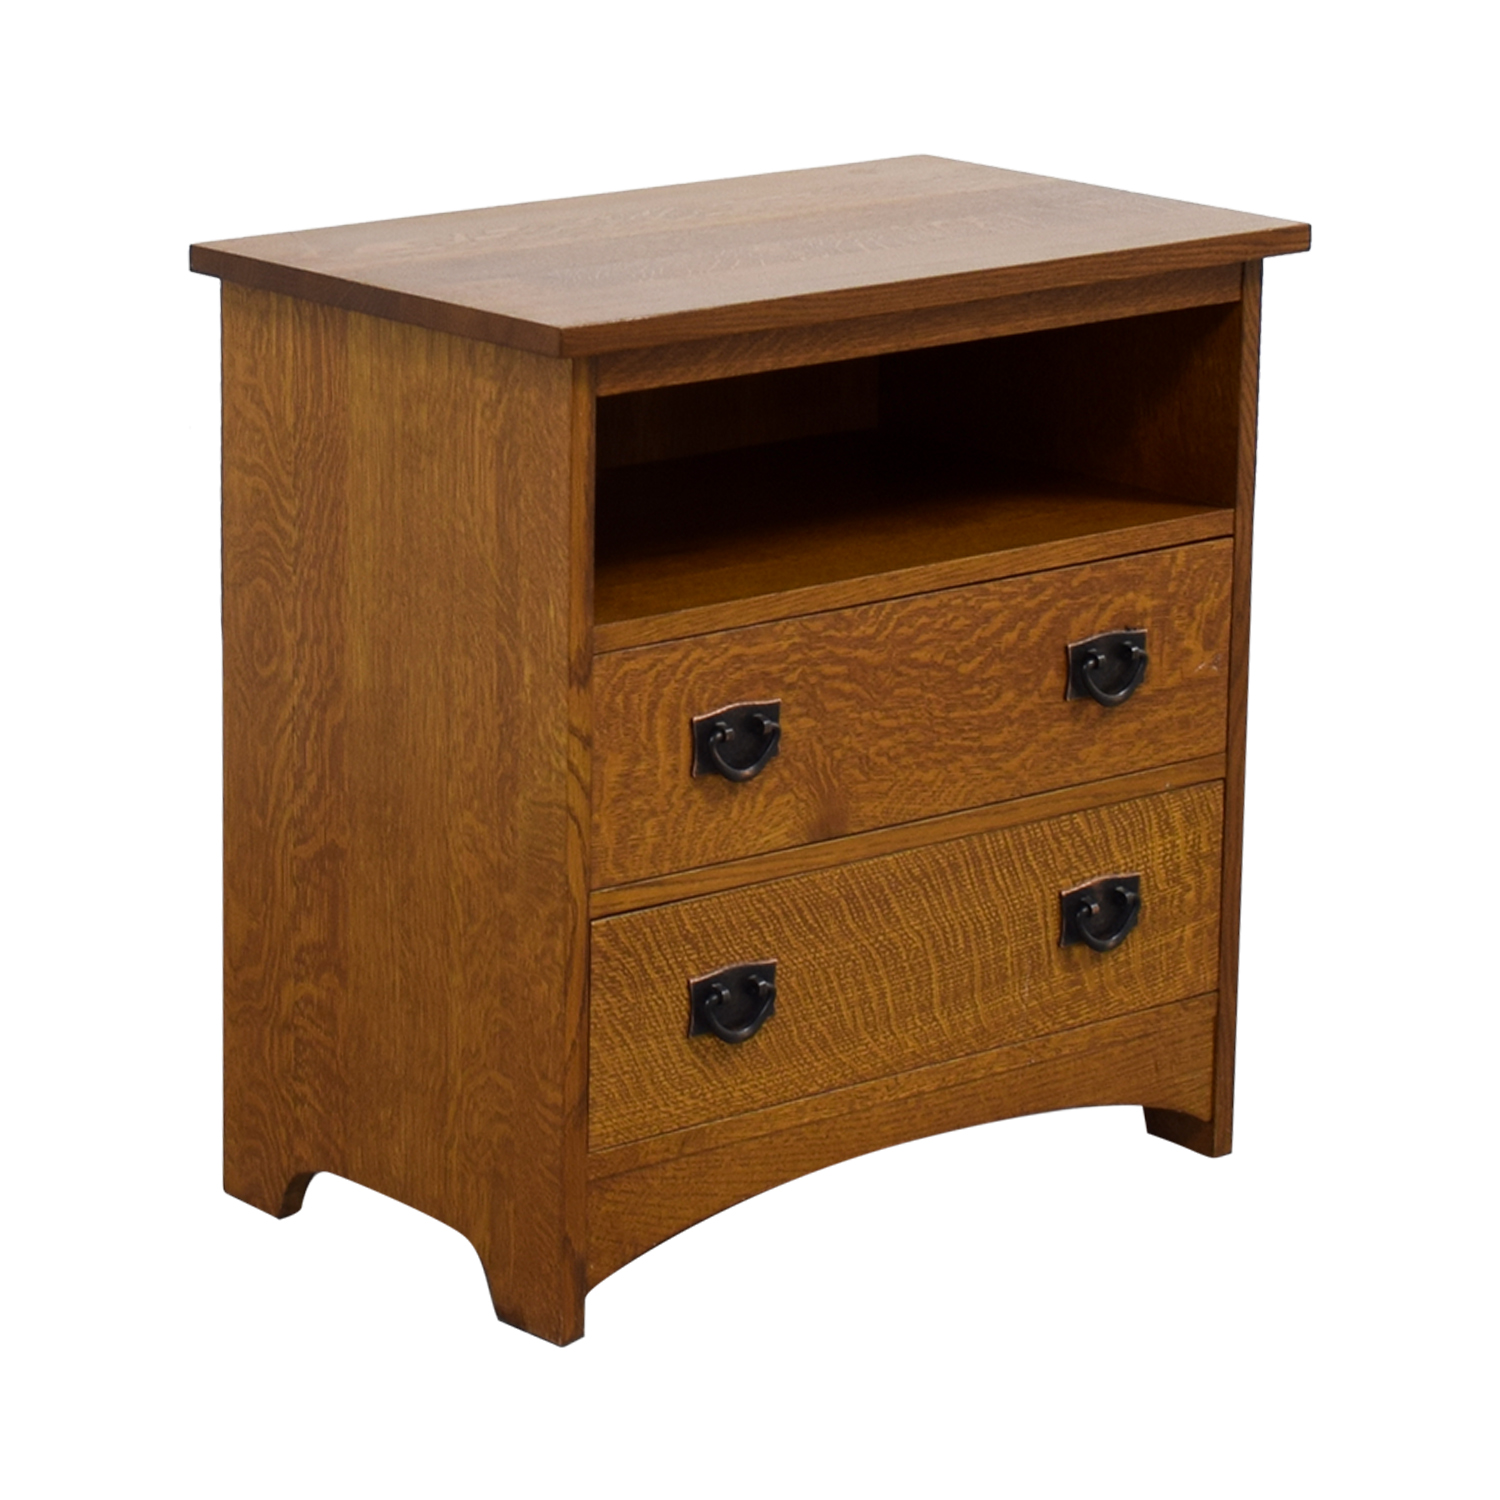 Stickley Stickley Mission Side Table for sale